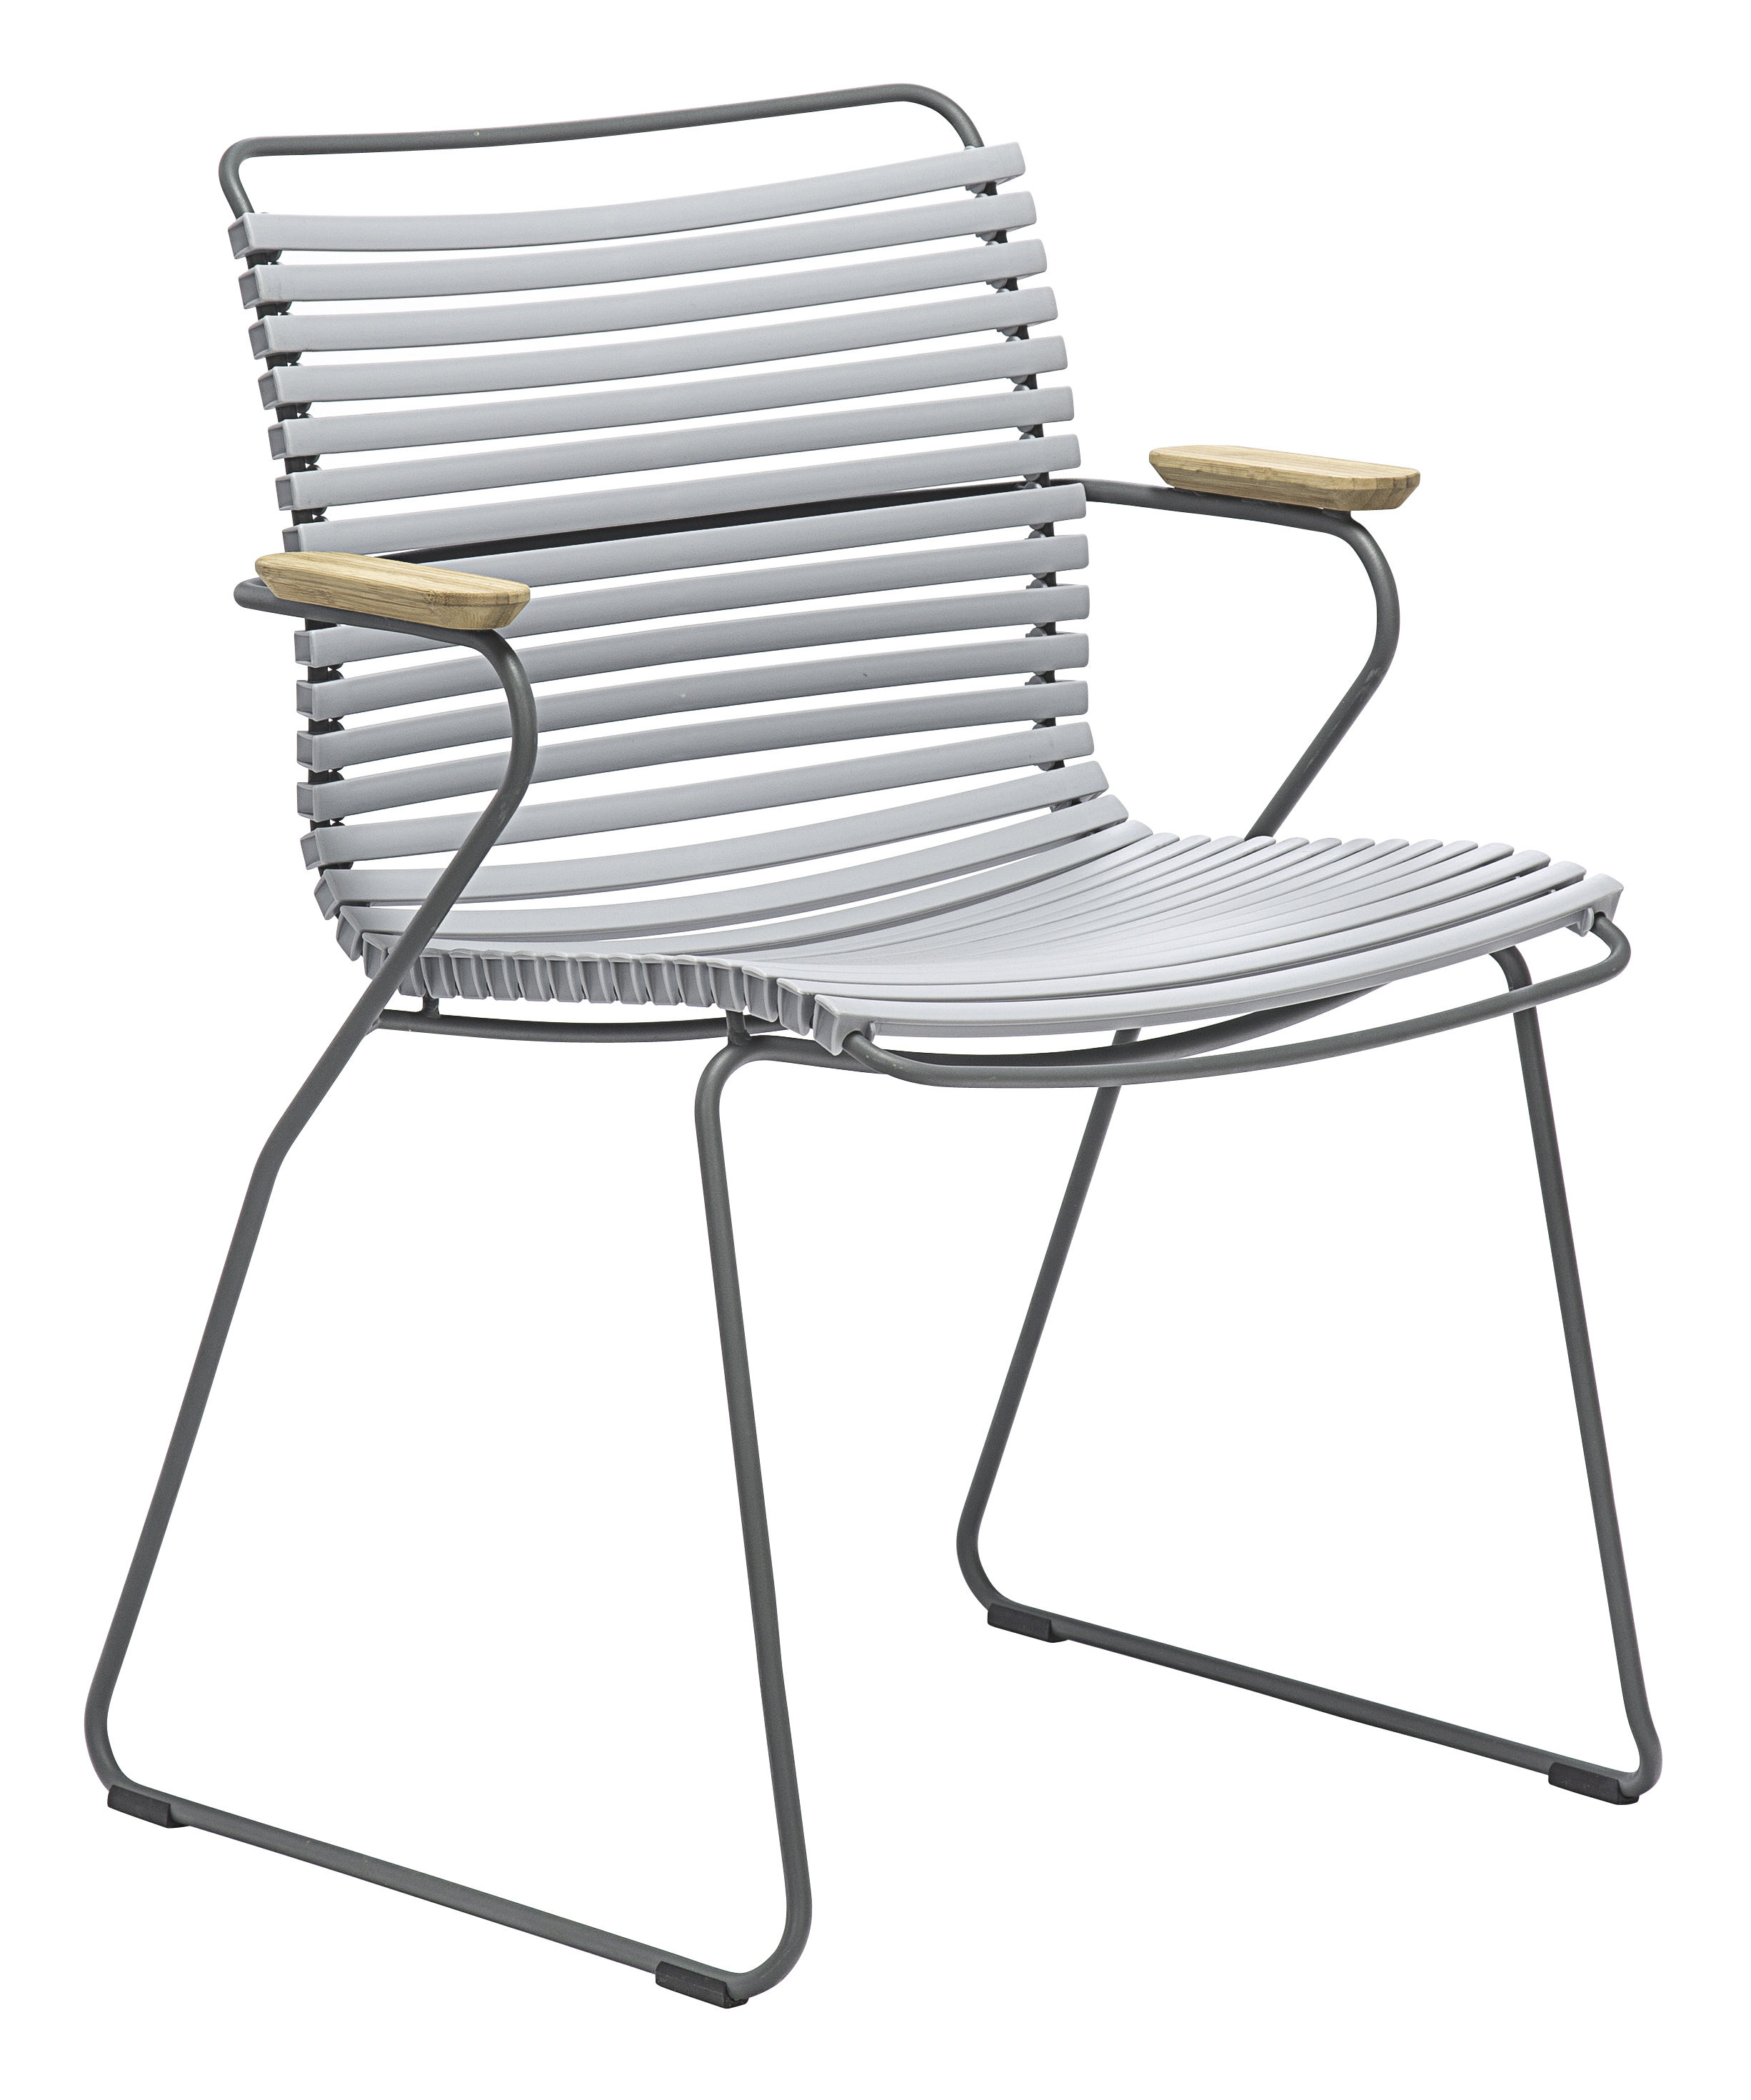 Furniture - Chairs - Click Armchair - Plastic & bamboo armrests by Houe - Grey - Bamboo, Metal, Plastic material